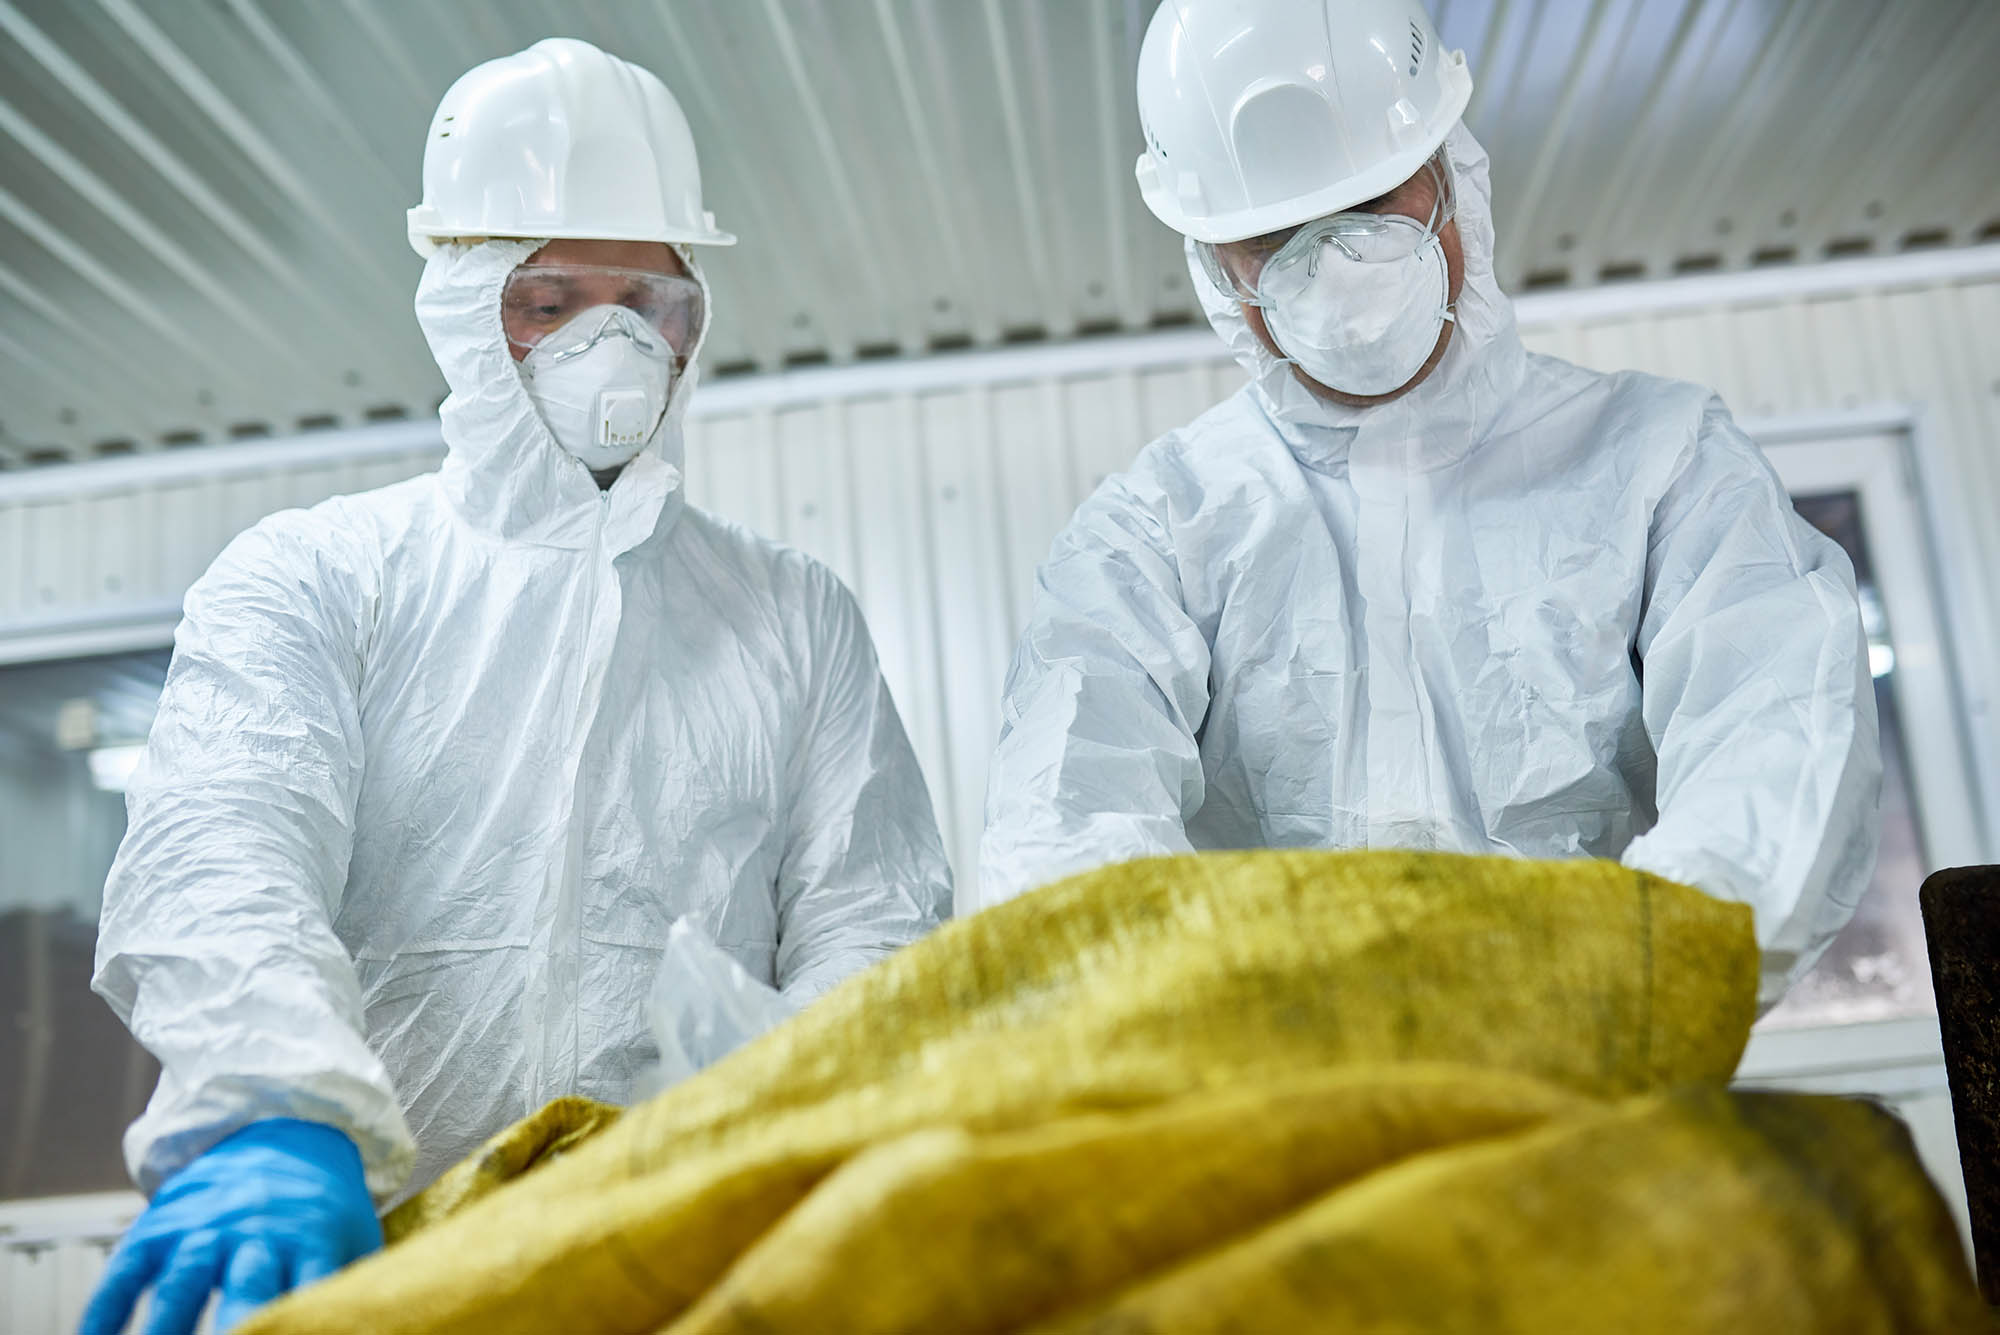 Waste management workers wearing biohazard suits working at waste processing plant sorting recyclable materials, work-related illness protection